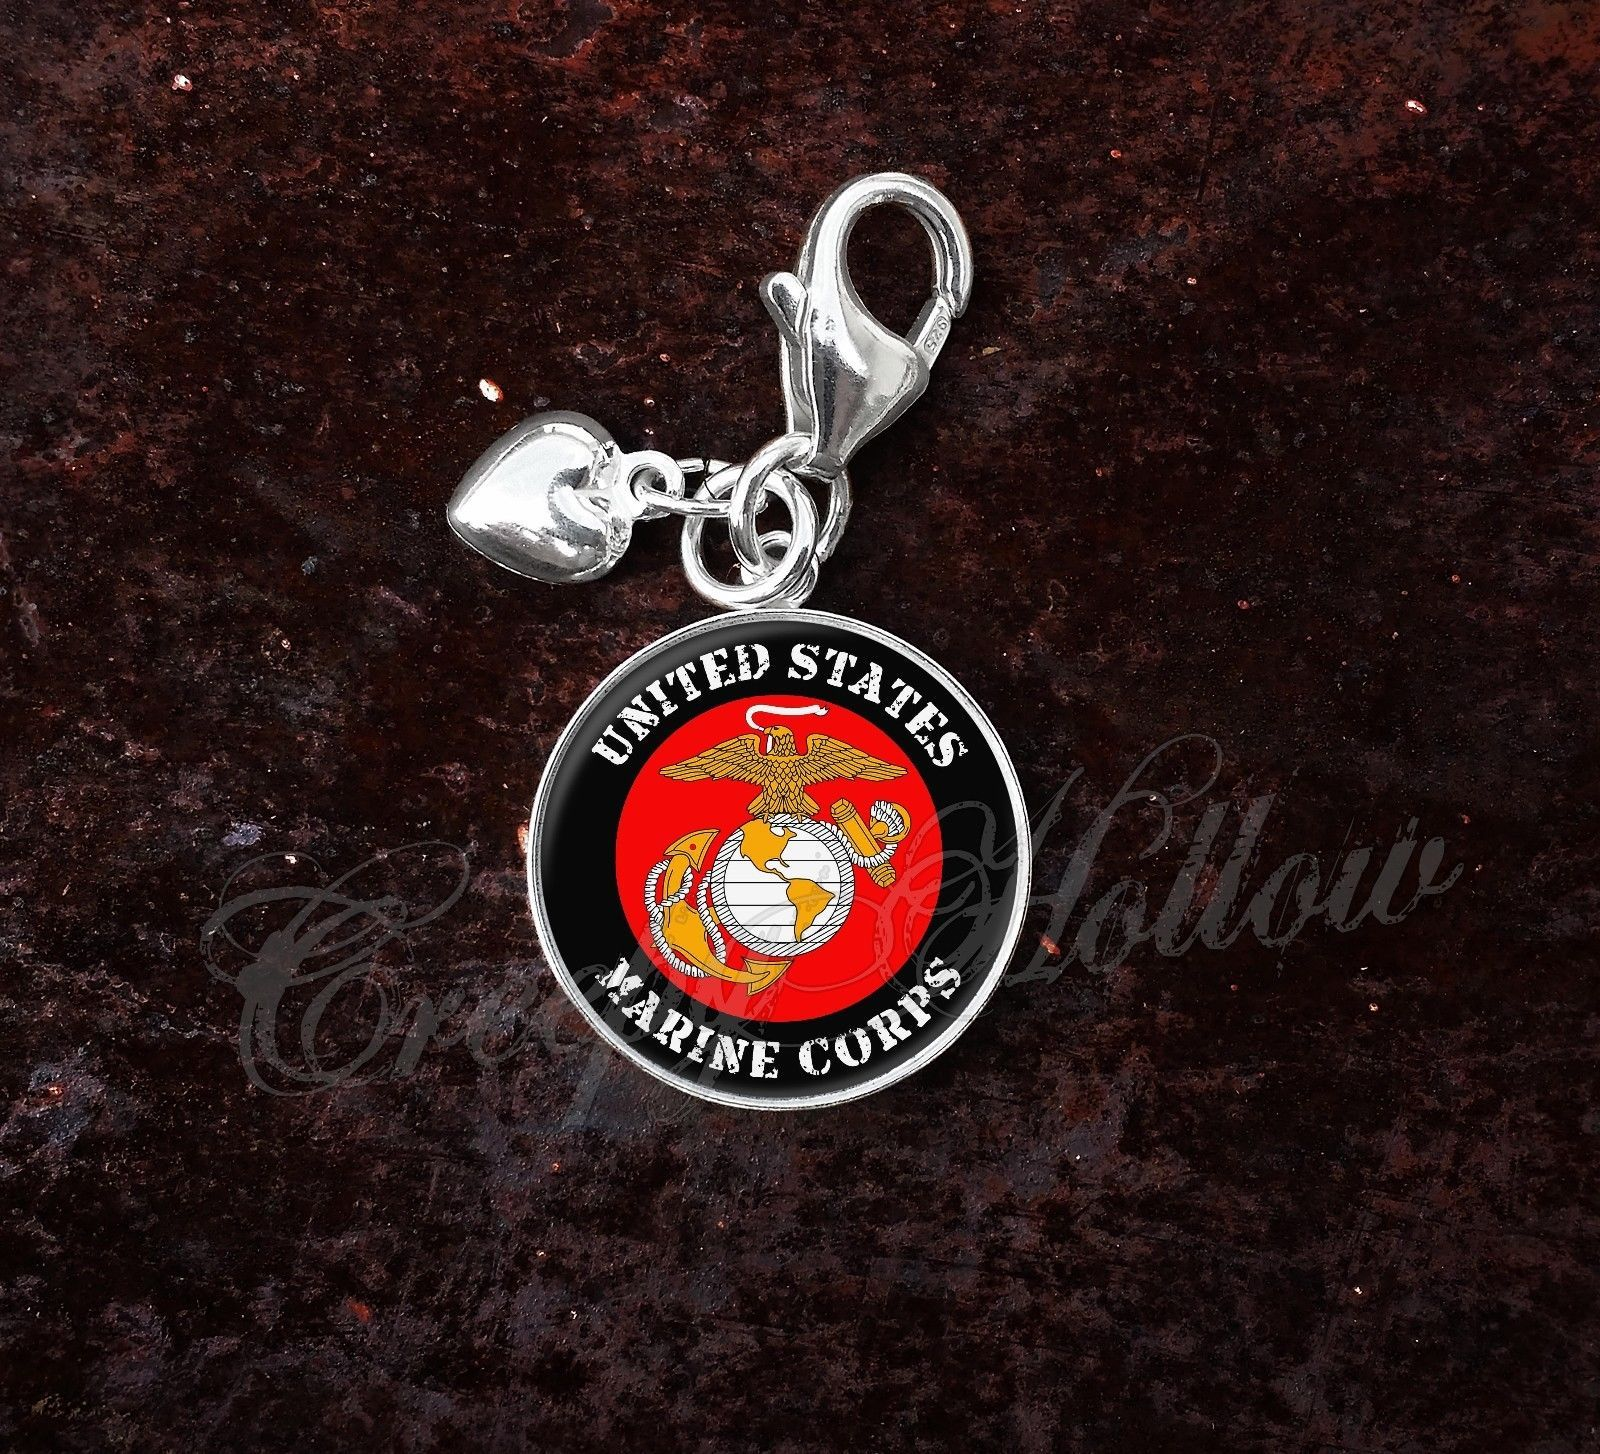 Primary image for 925 Sterling Silver Charm United States Marine Corps